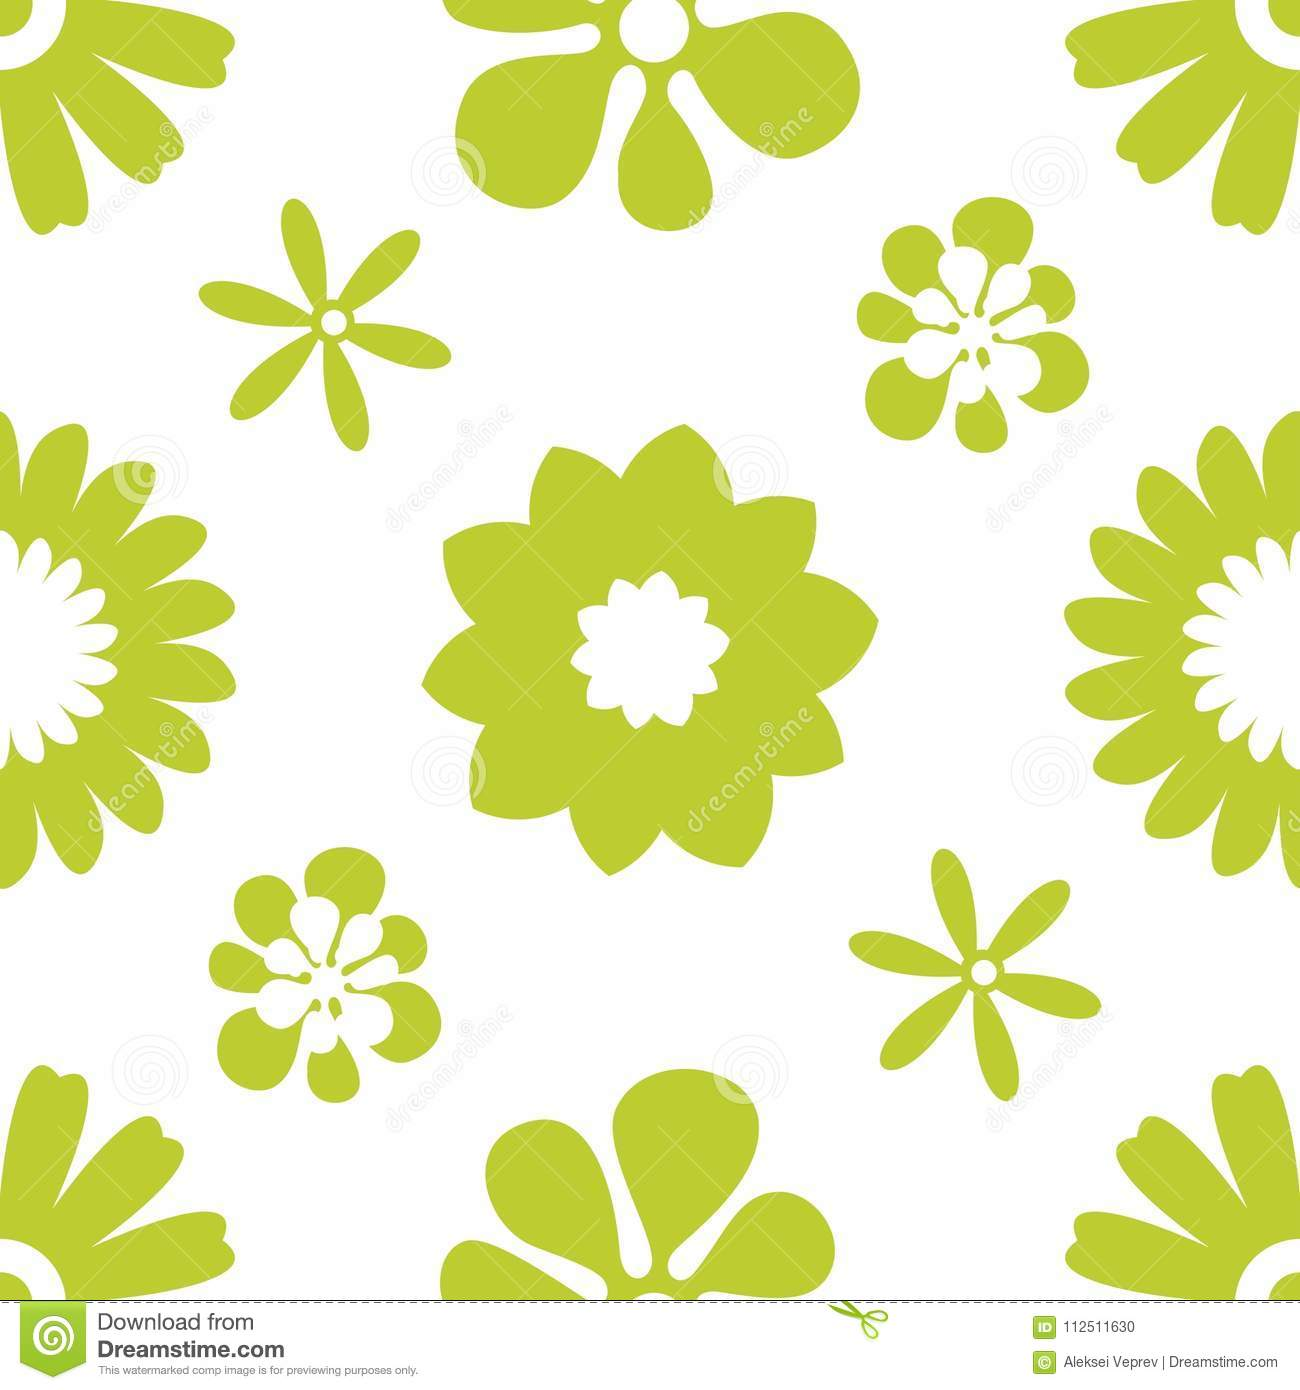 Flower Simple Minimalistic Seamless Pattern Graphic Design For Paper Textile Print Page Fill Stock Vector Illustration Of Artistic Drawn 112511630,Royal Blue Wedding Cupcake Designs